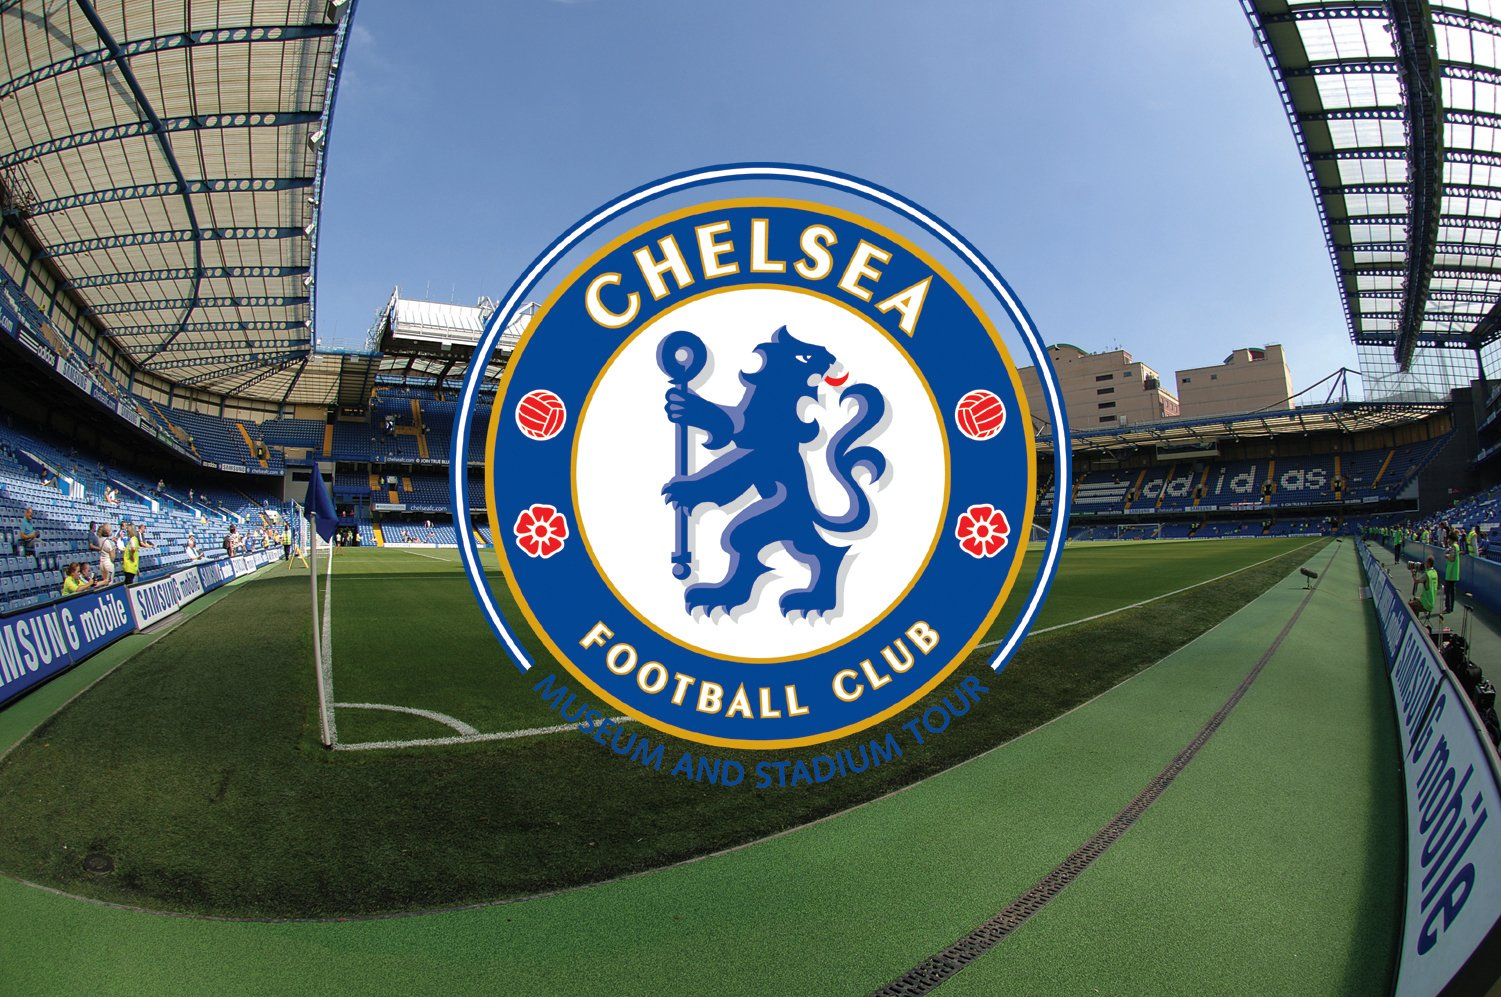 Chelsea Football Club Adult Tour for 2 Gift Experiences